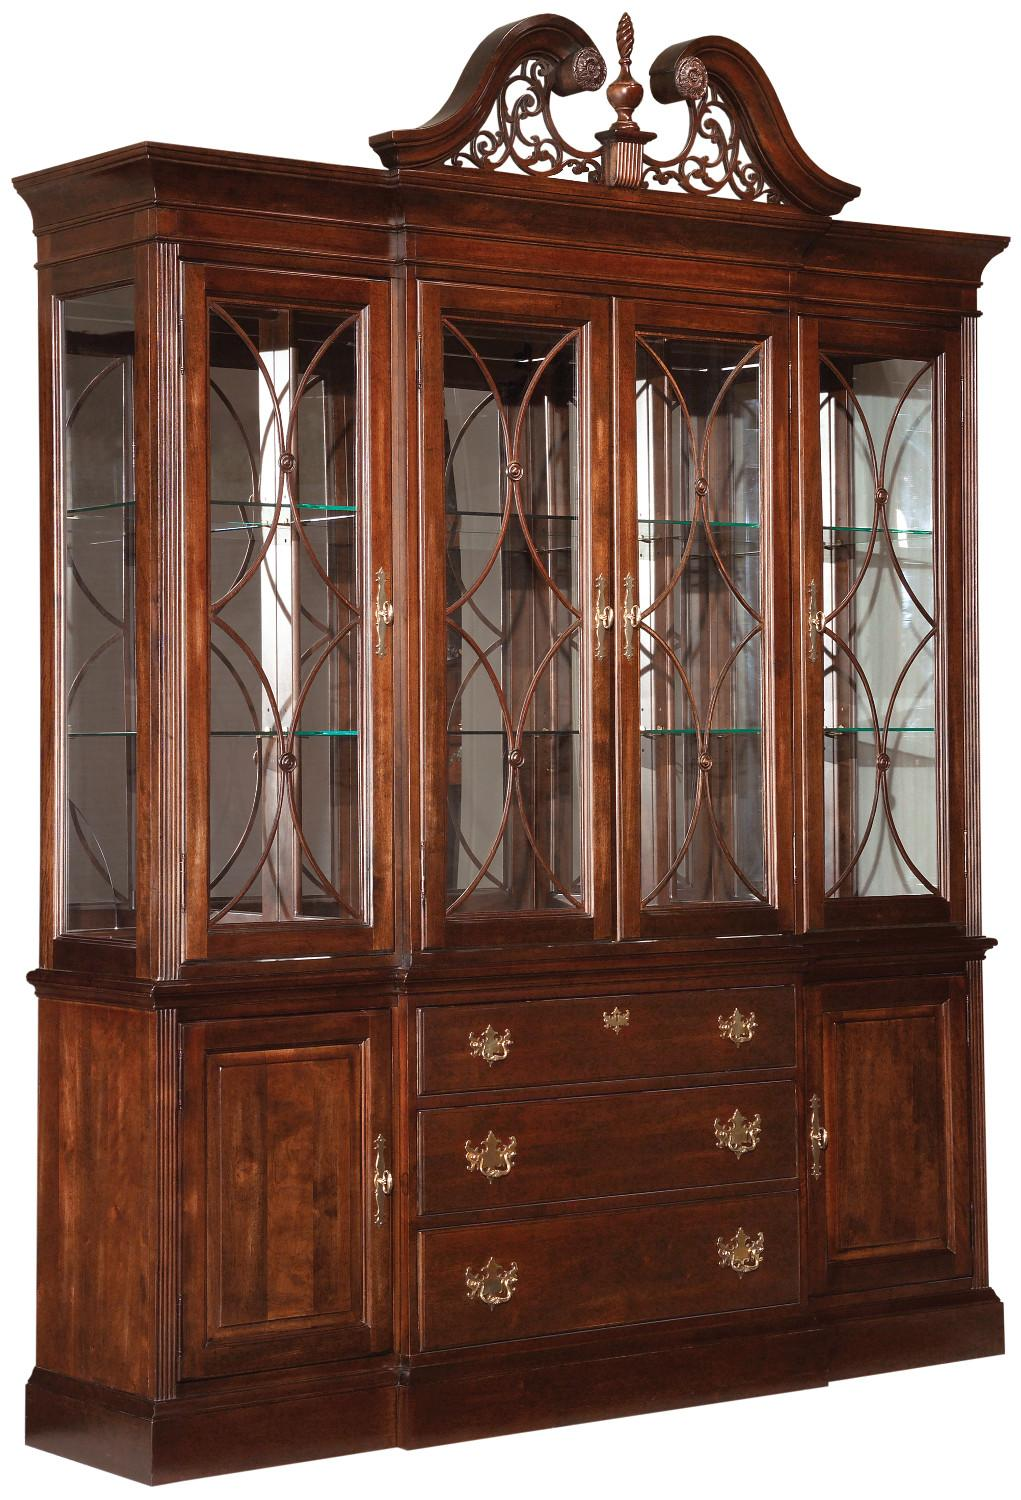 Carriage House Breakfront China Cabinet By Kincaid Furniture